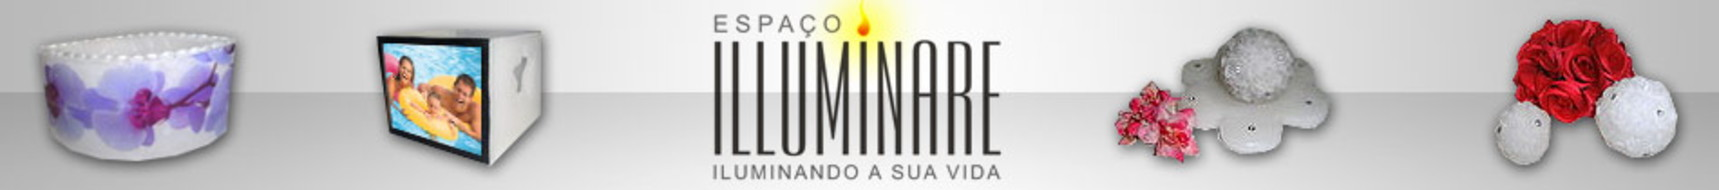 ILLUMINARE